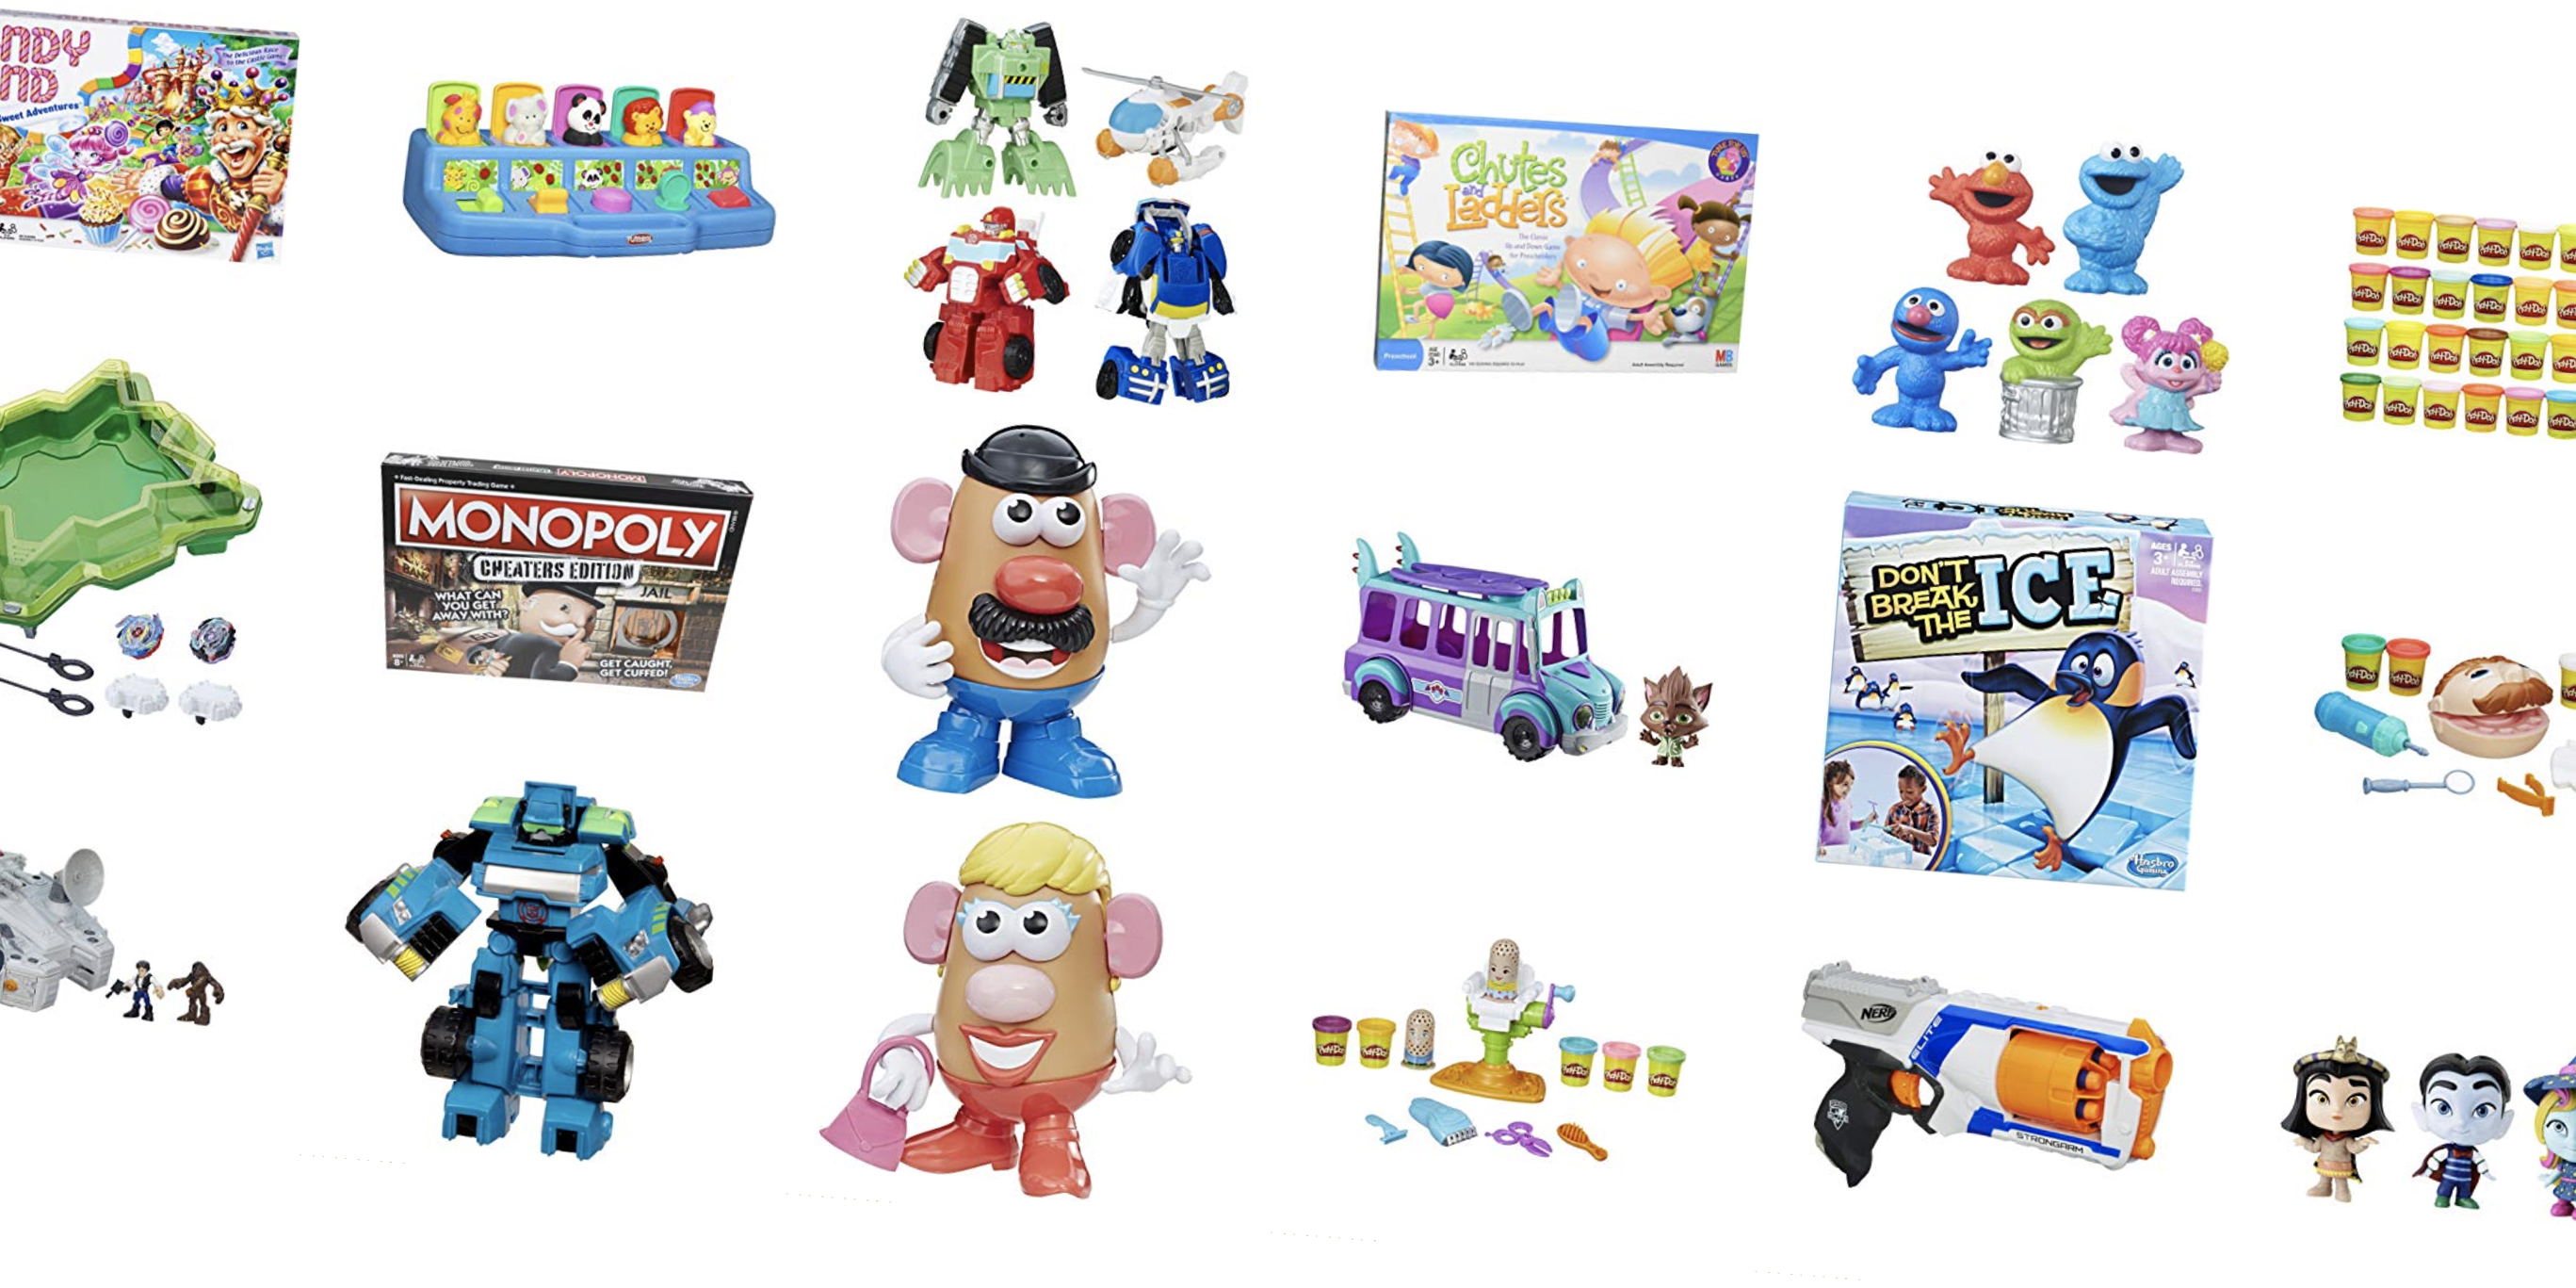 Hasbro toys fill today's Amazon Gold Box from $5: NERF, Play-Doh, board games, more